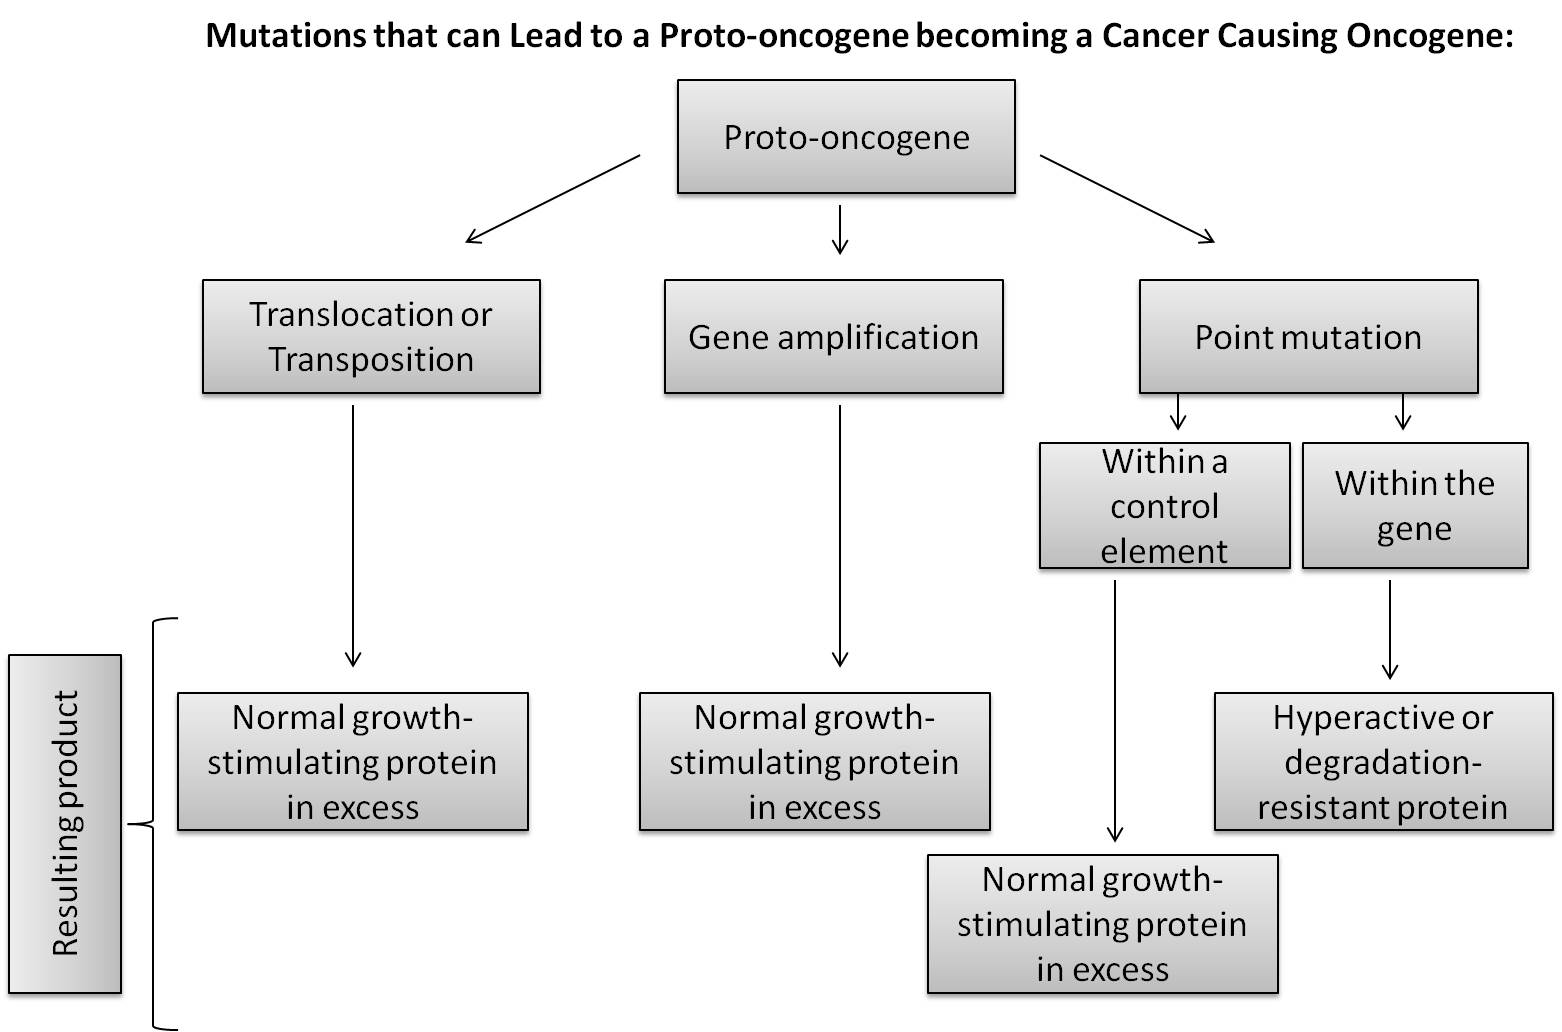 Parallel Flow Chart: Conversion of proto-oncogene flow chart.jpg - Wikimedia Commons,Chart